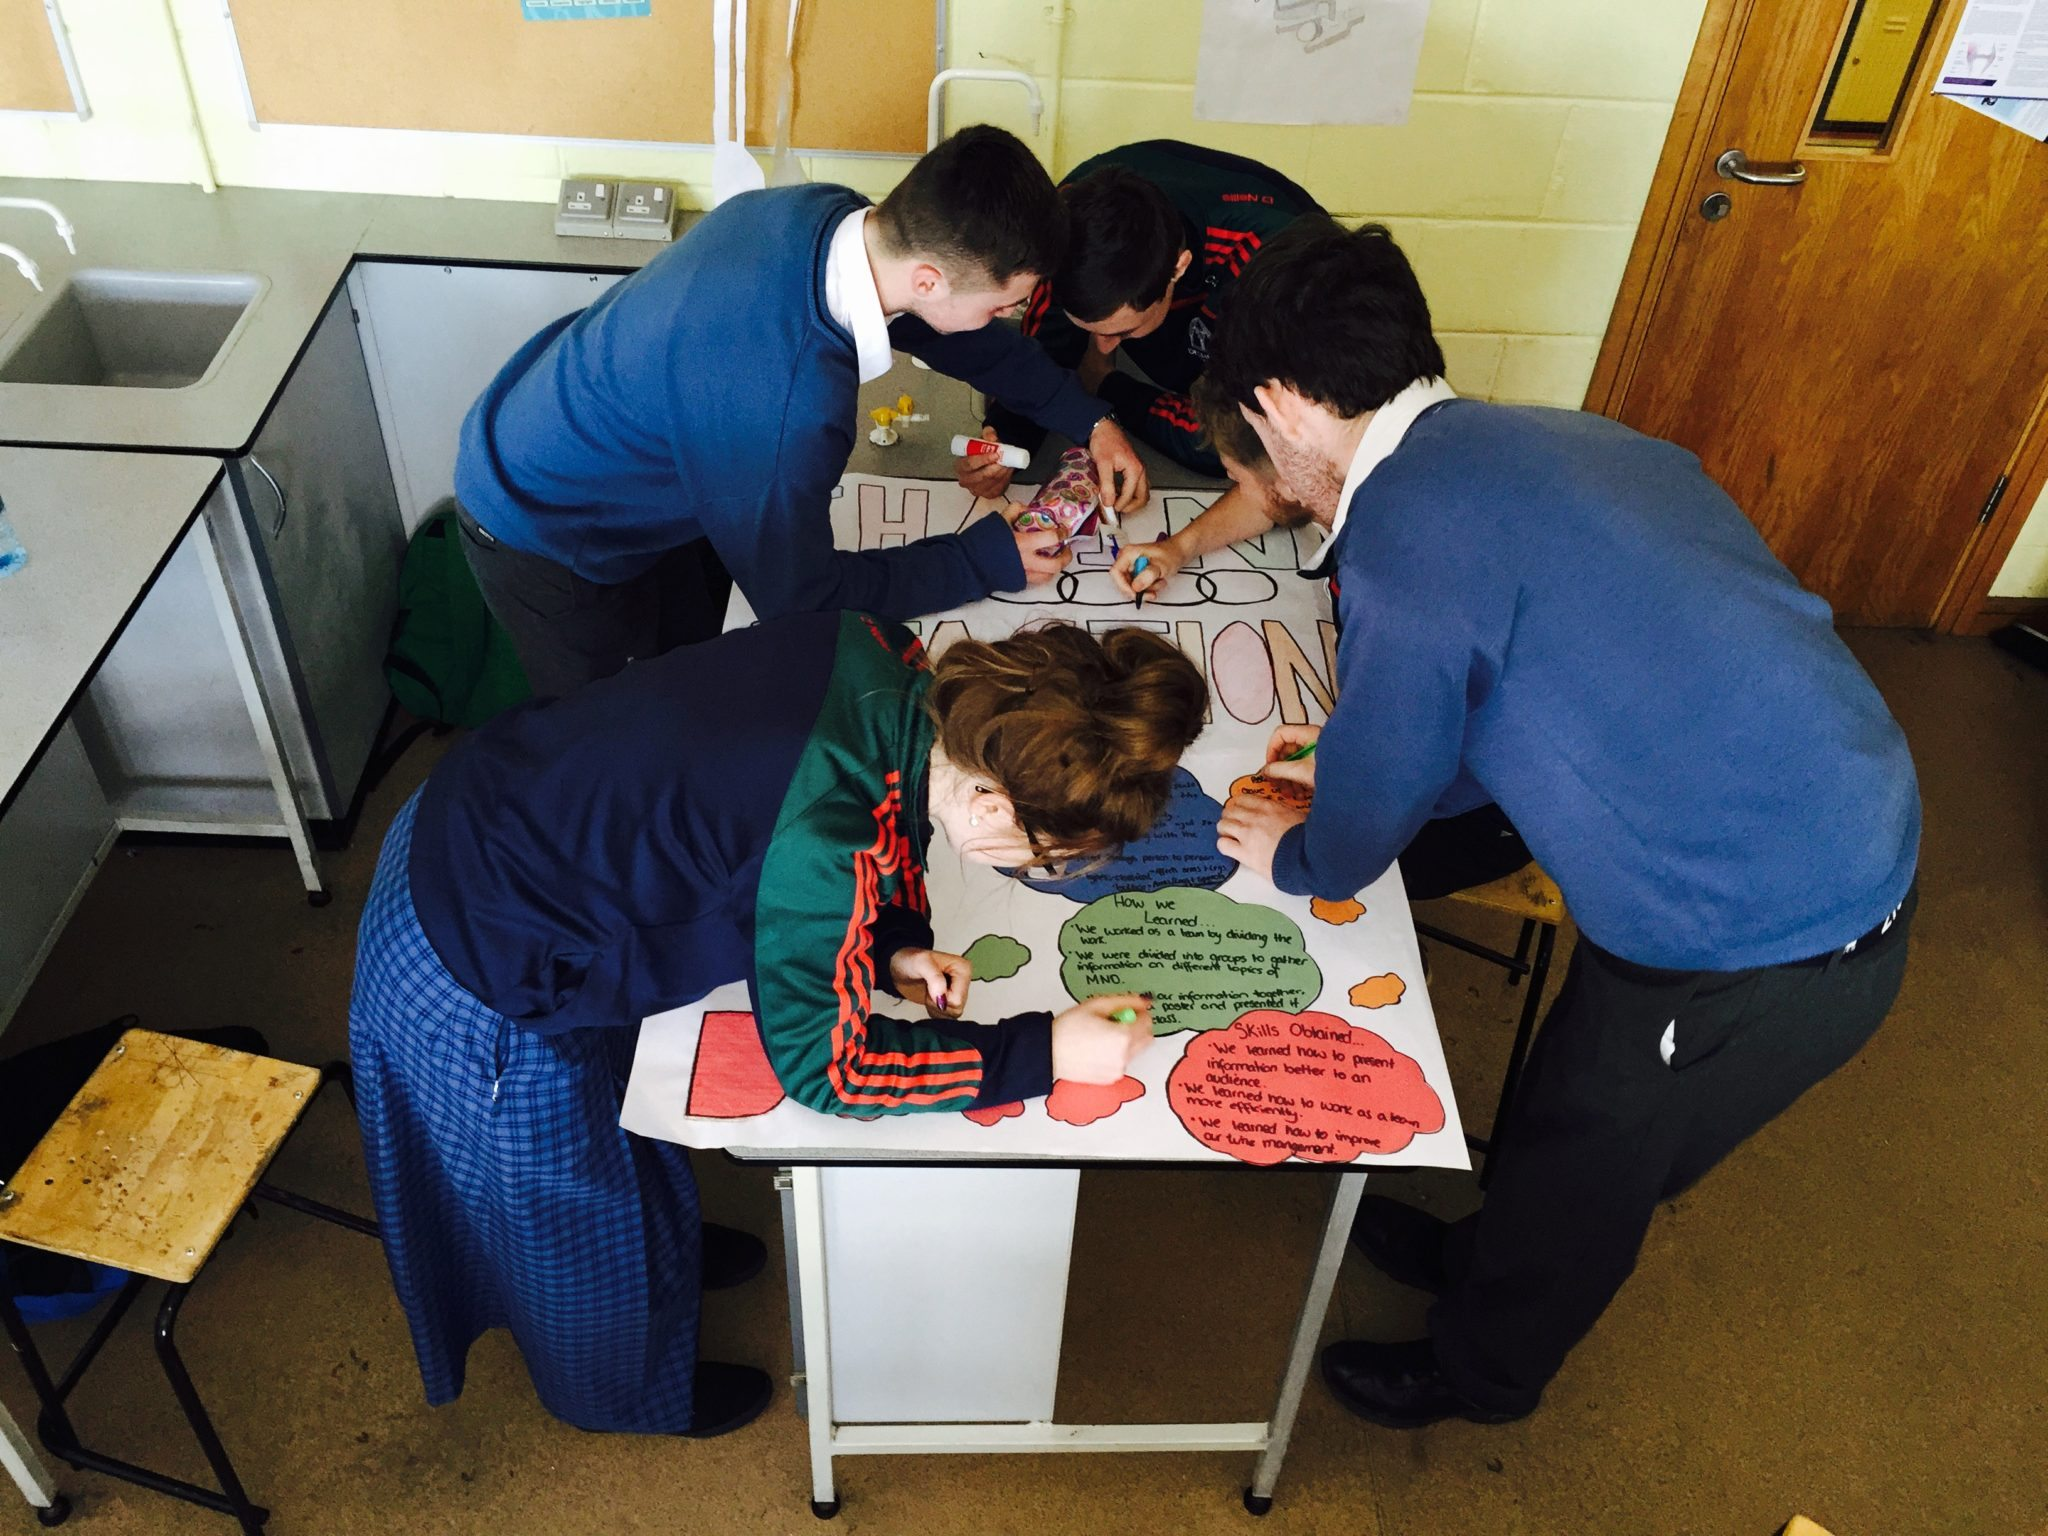 Desmond College Transition Year Students putting the finishing touches on their projects  for the Chain Reaction Conference at the University of Limerick